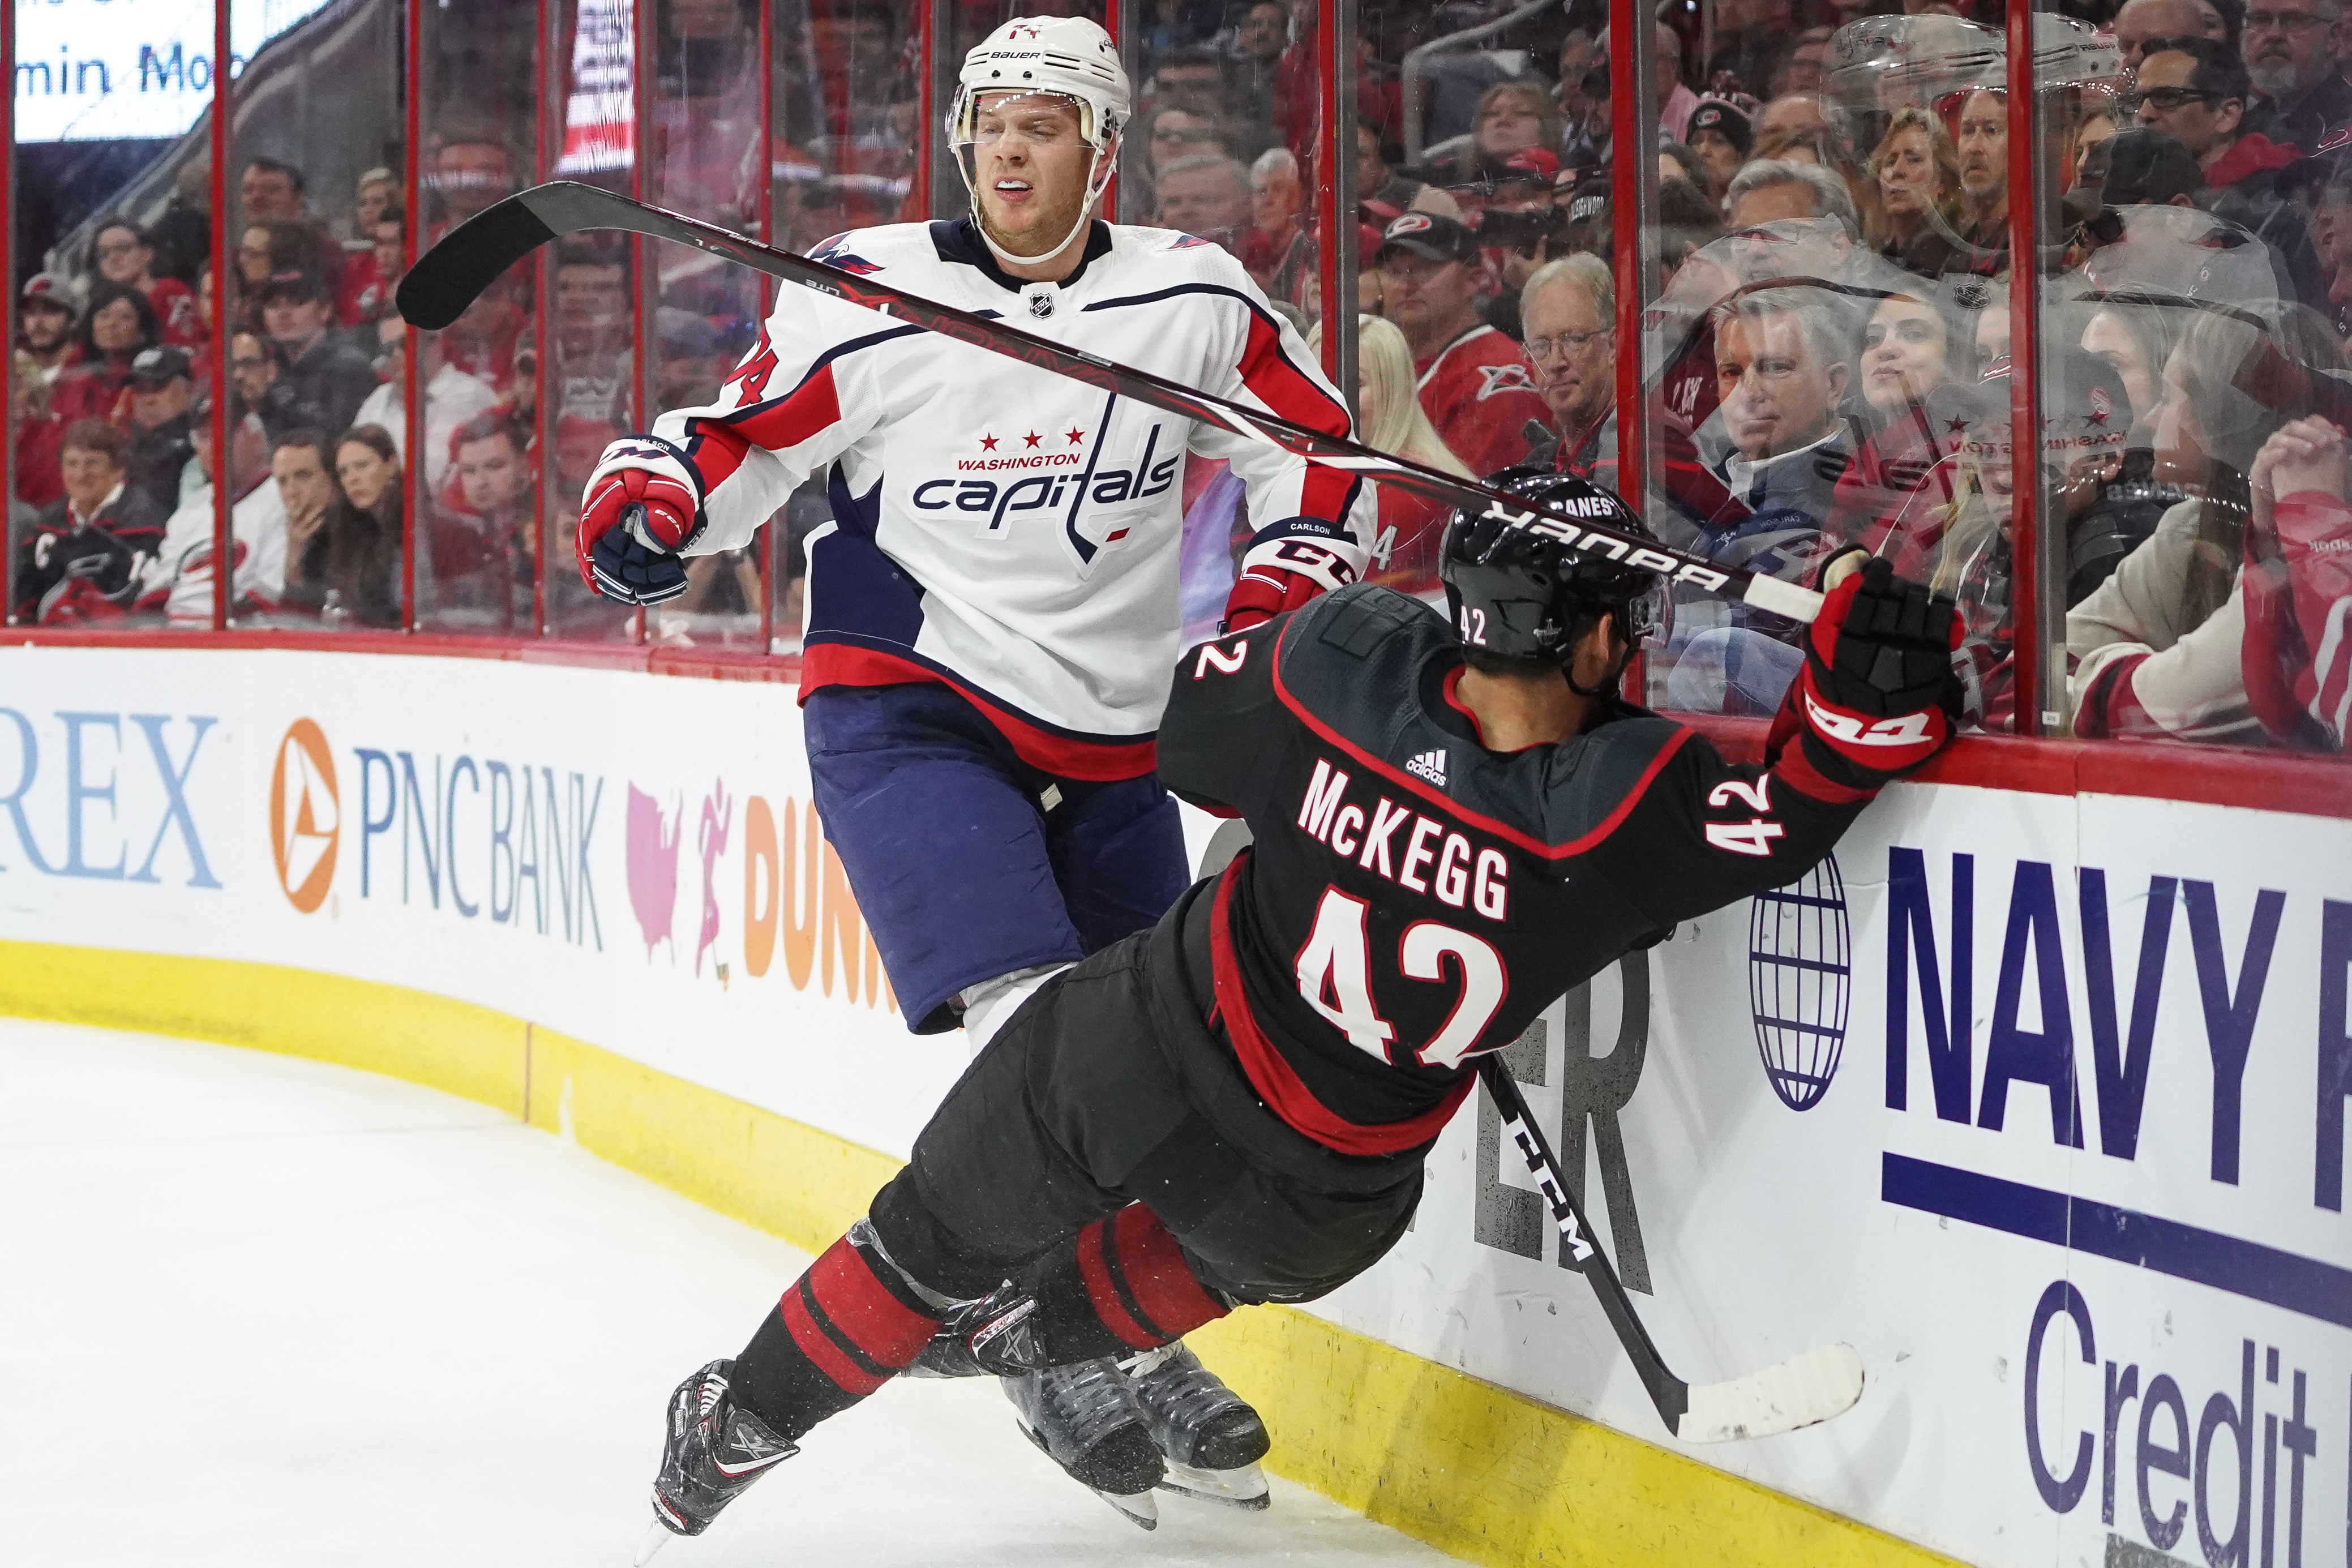 NHL: APR 18 Stanley Cup Playoffs First Round - Capitals at Hurricanes